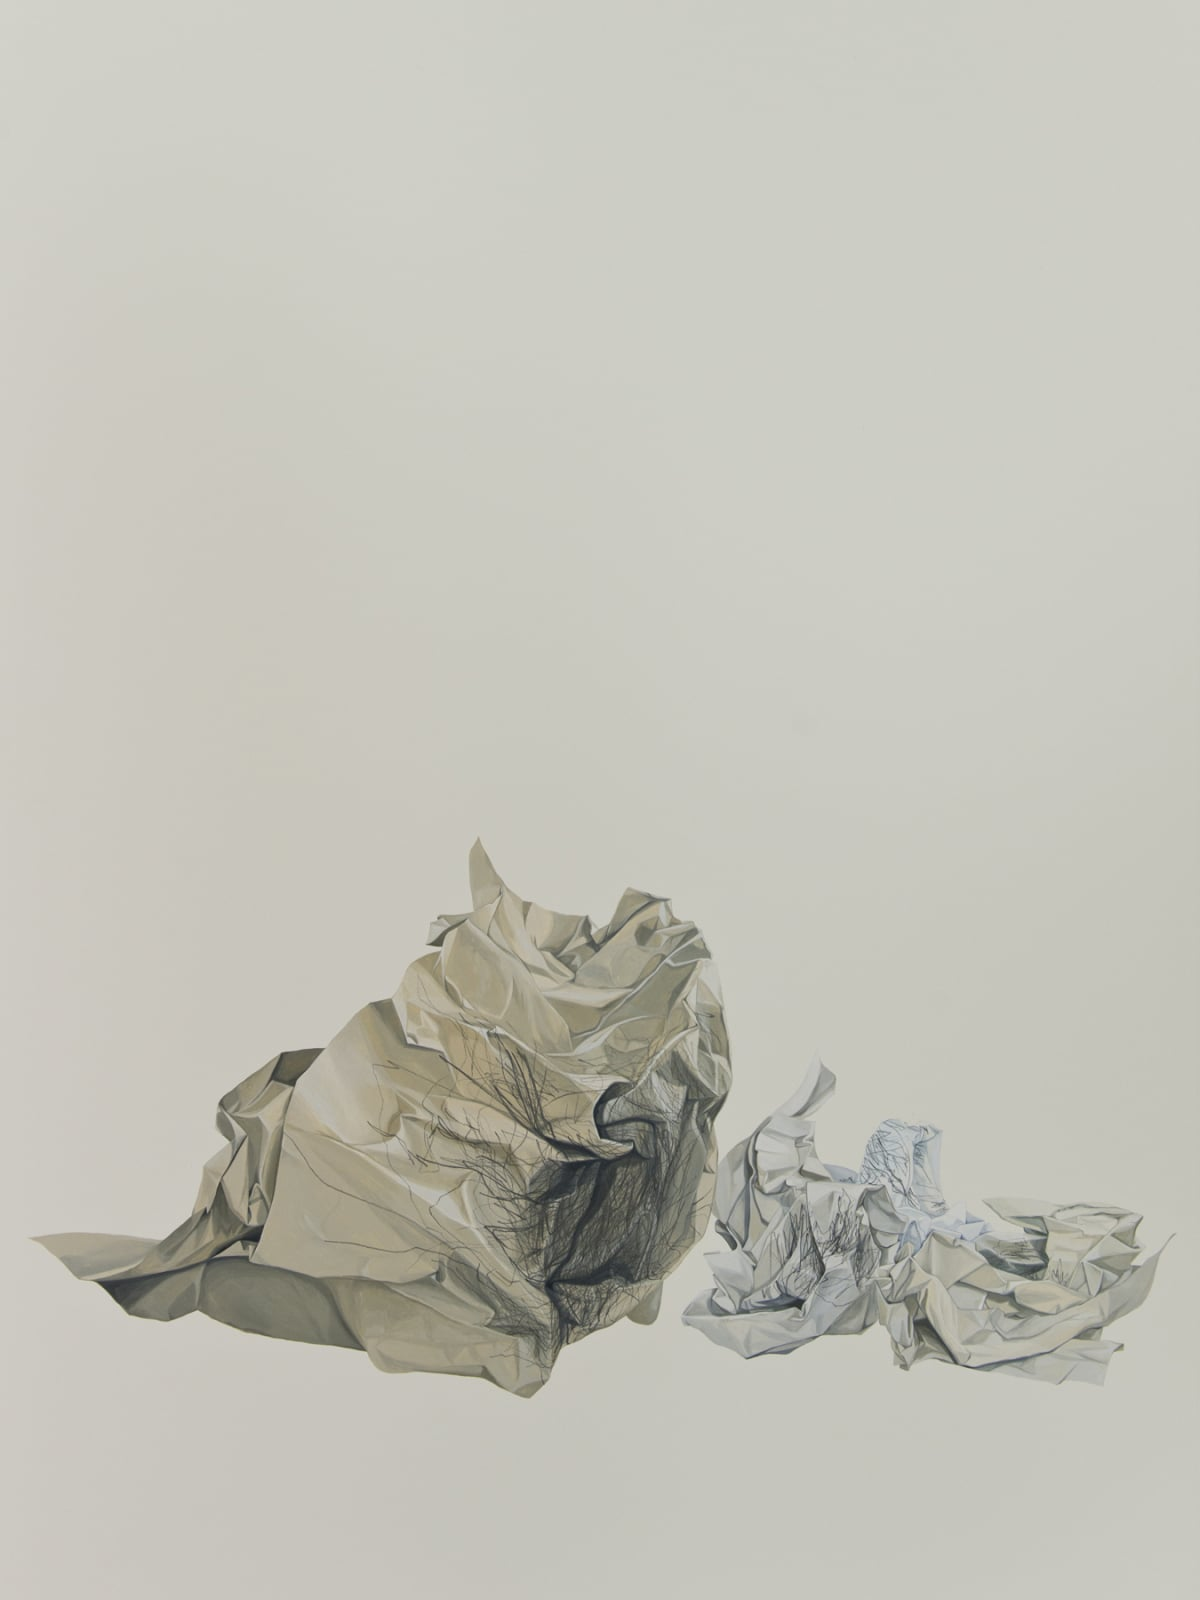 Marita Hewitt Waste Paper Series; Charting Balance With My Eyes Closed, 2015 Watercolour and graphite on paper 45.3 x 34.3 in 115 x 87 cm